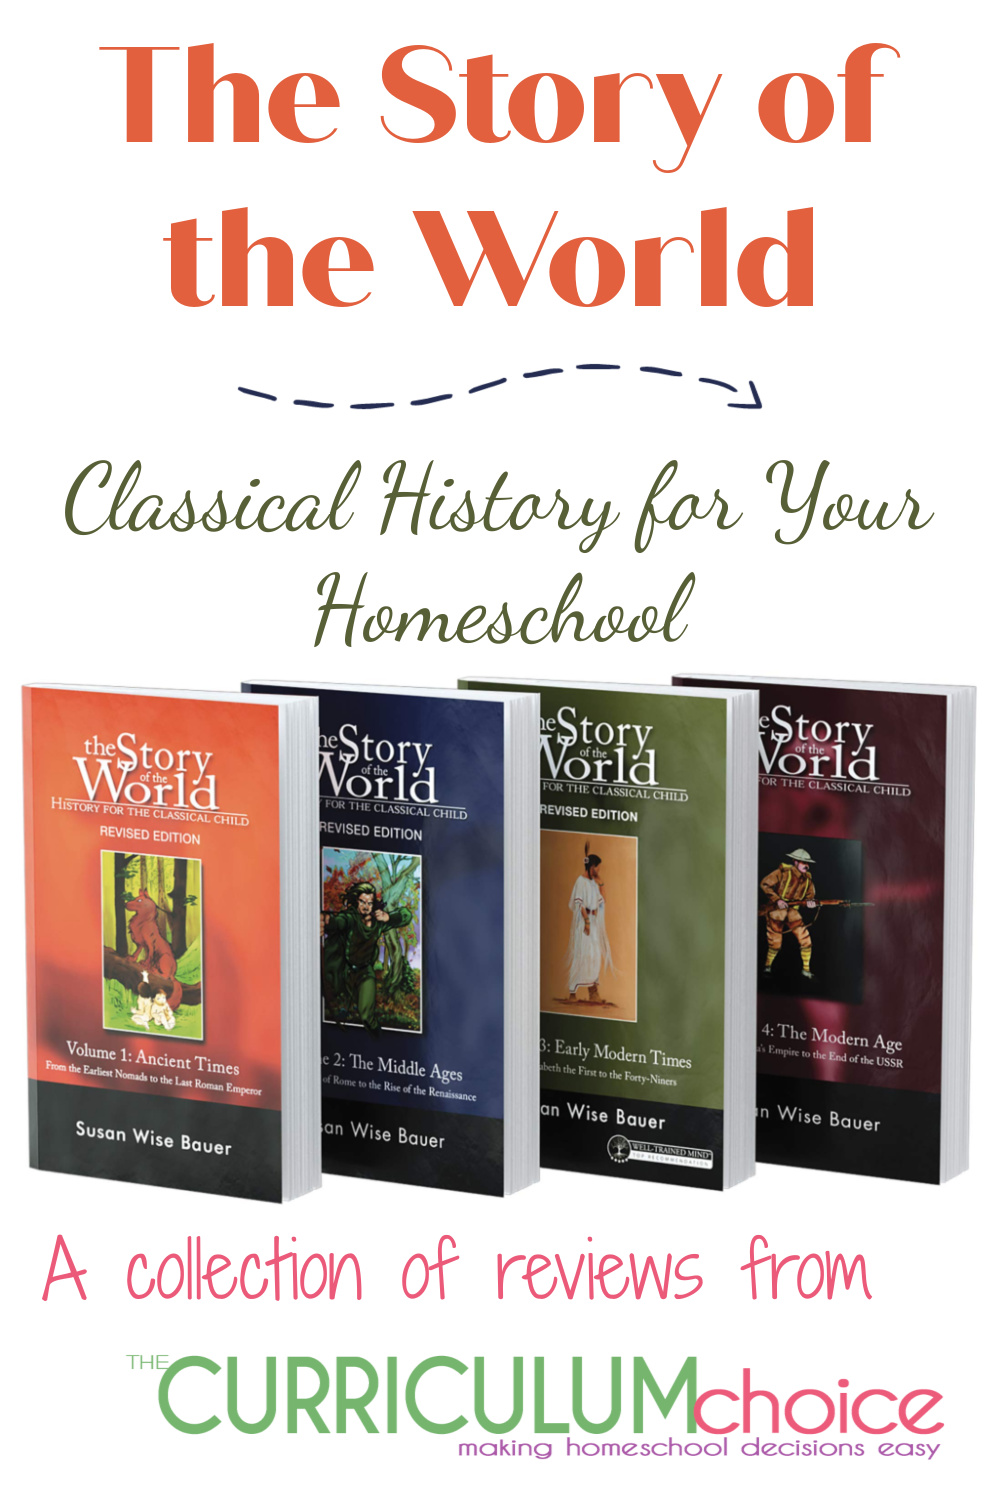 The Story of the World is a classically based, homeschool history curriculum for kids in grades 4-8. This is collection of reviews from the authors at The Curriculum Choice.